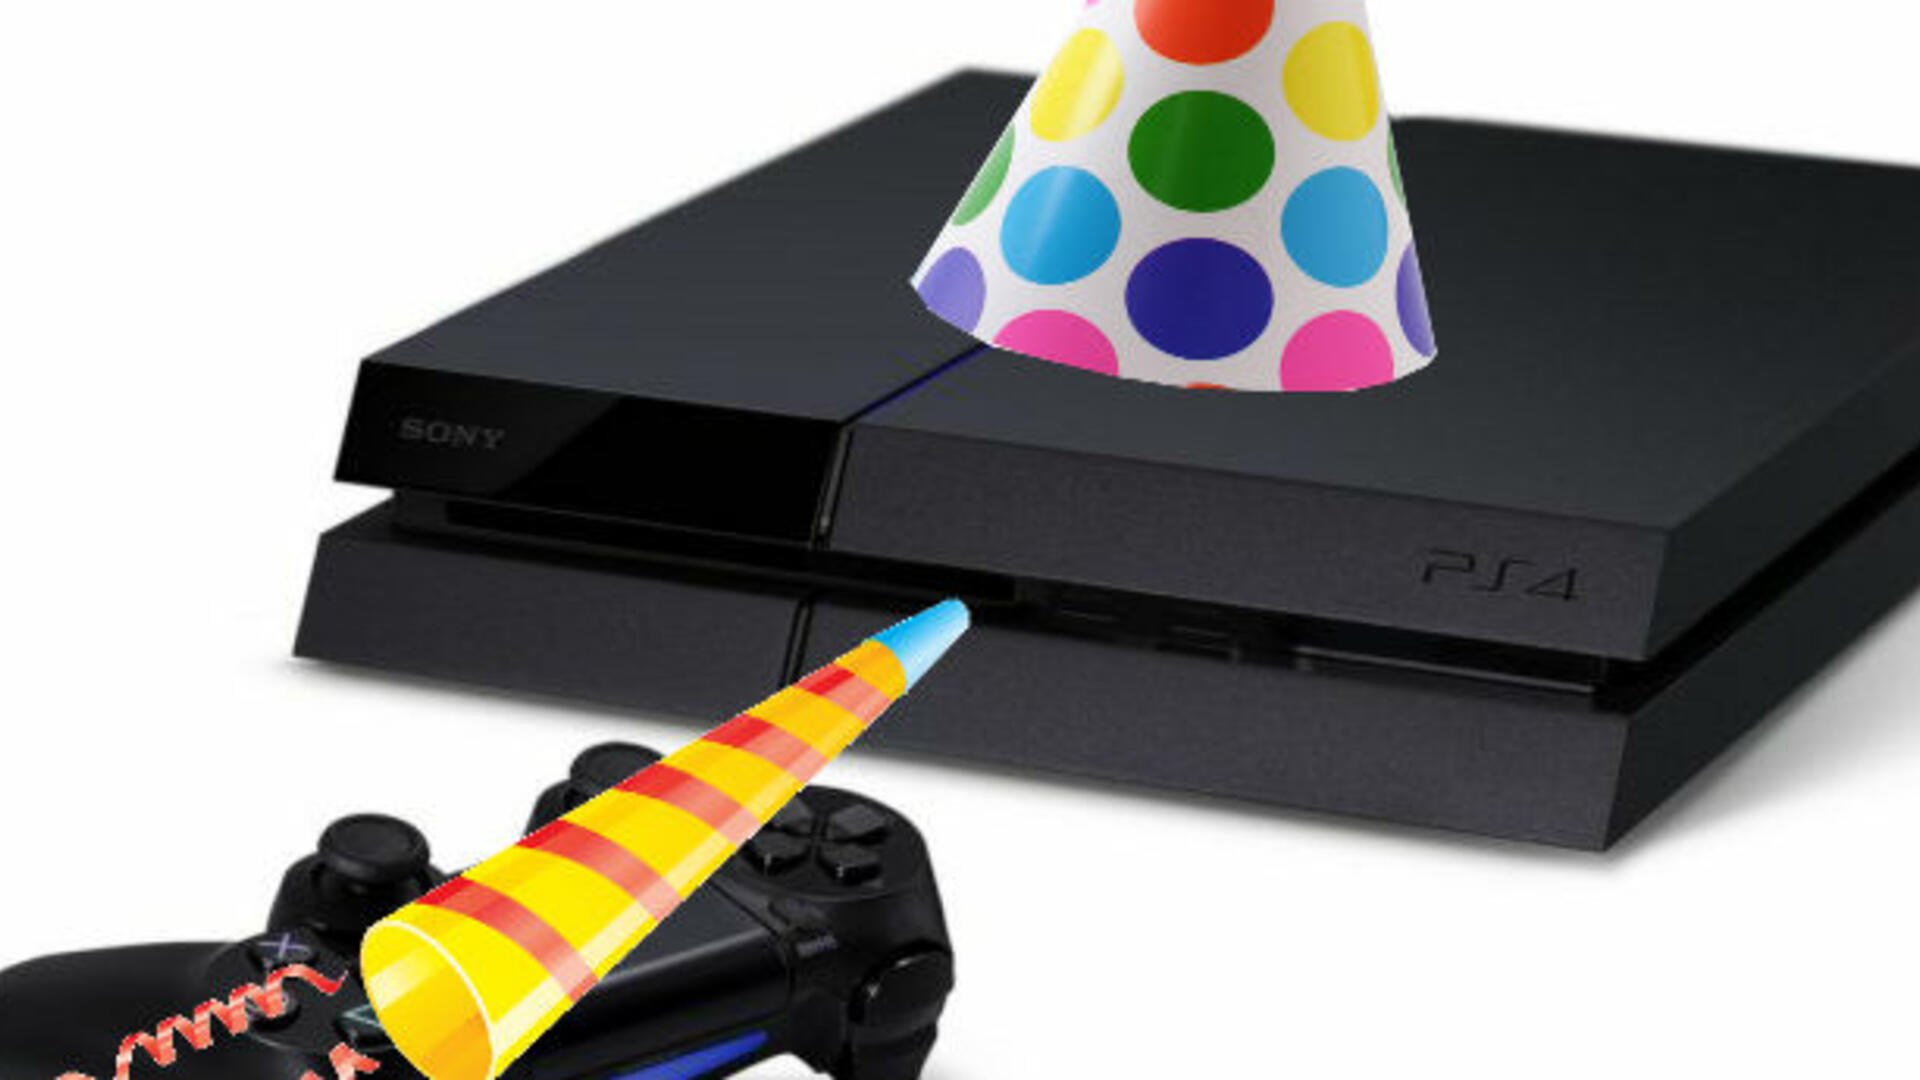 Devs Choose Their Favorite PlayStation 4 Games, and They're Pretty Much What You'd Expect